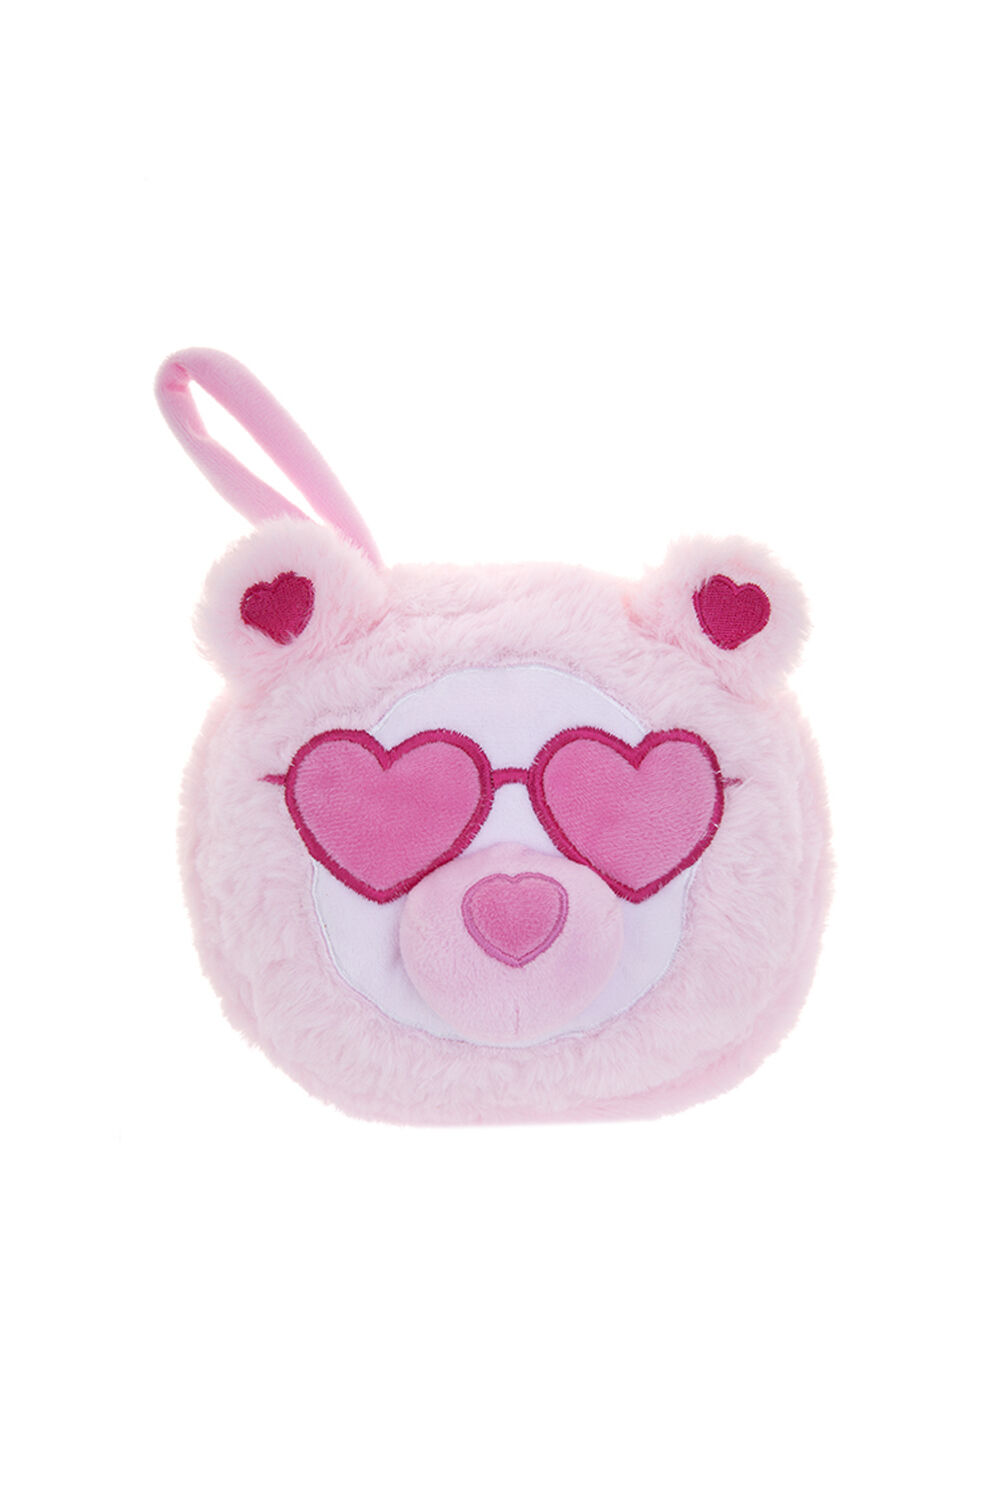 Llama 2 in 1 Travel Pillow in colour PARADISE PINK